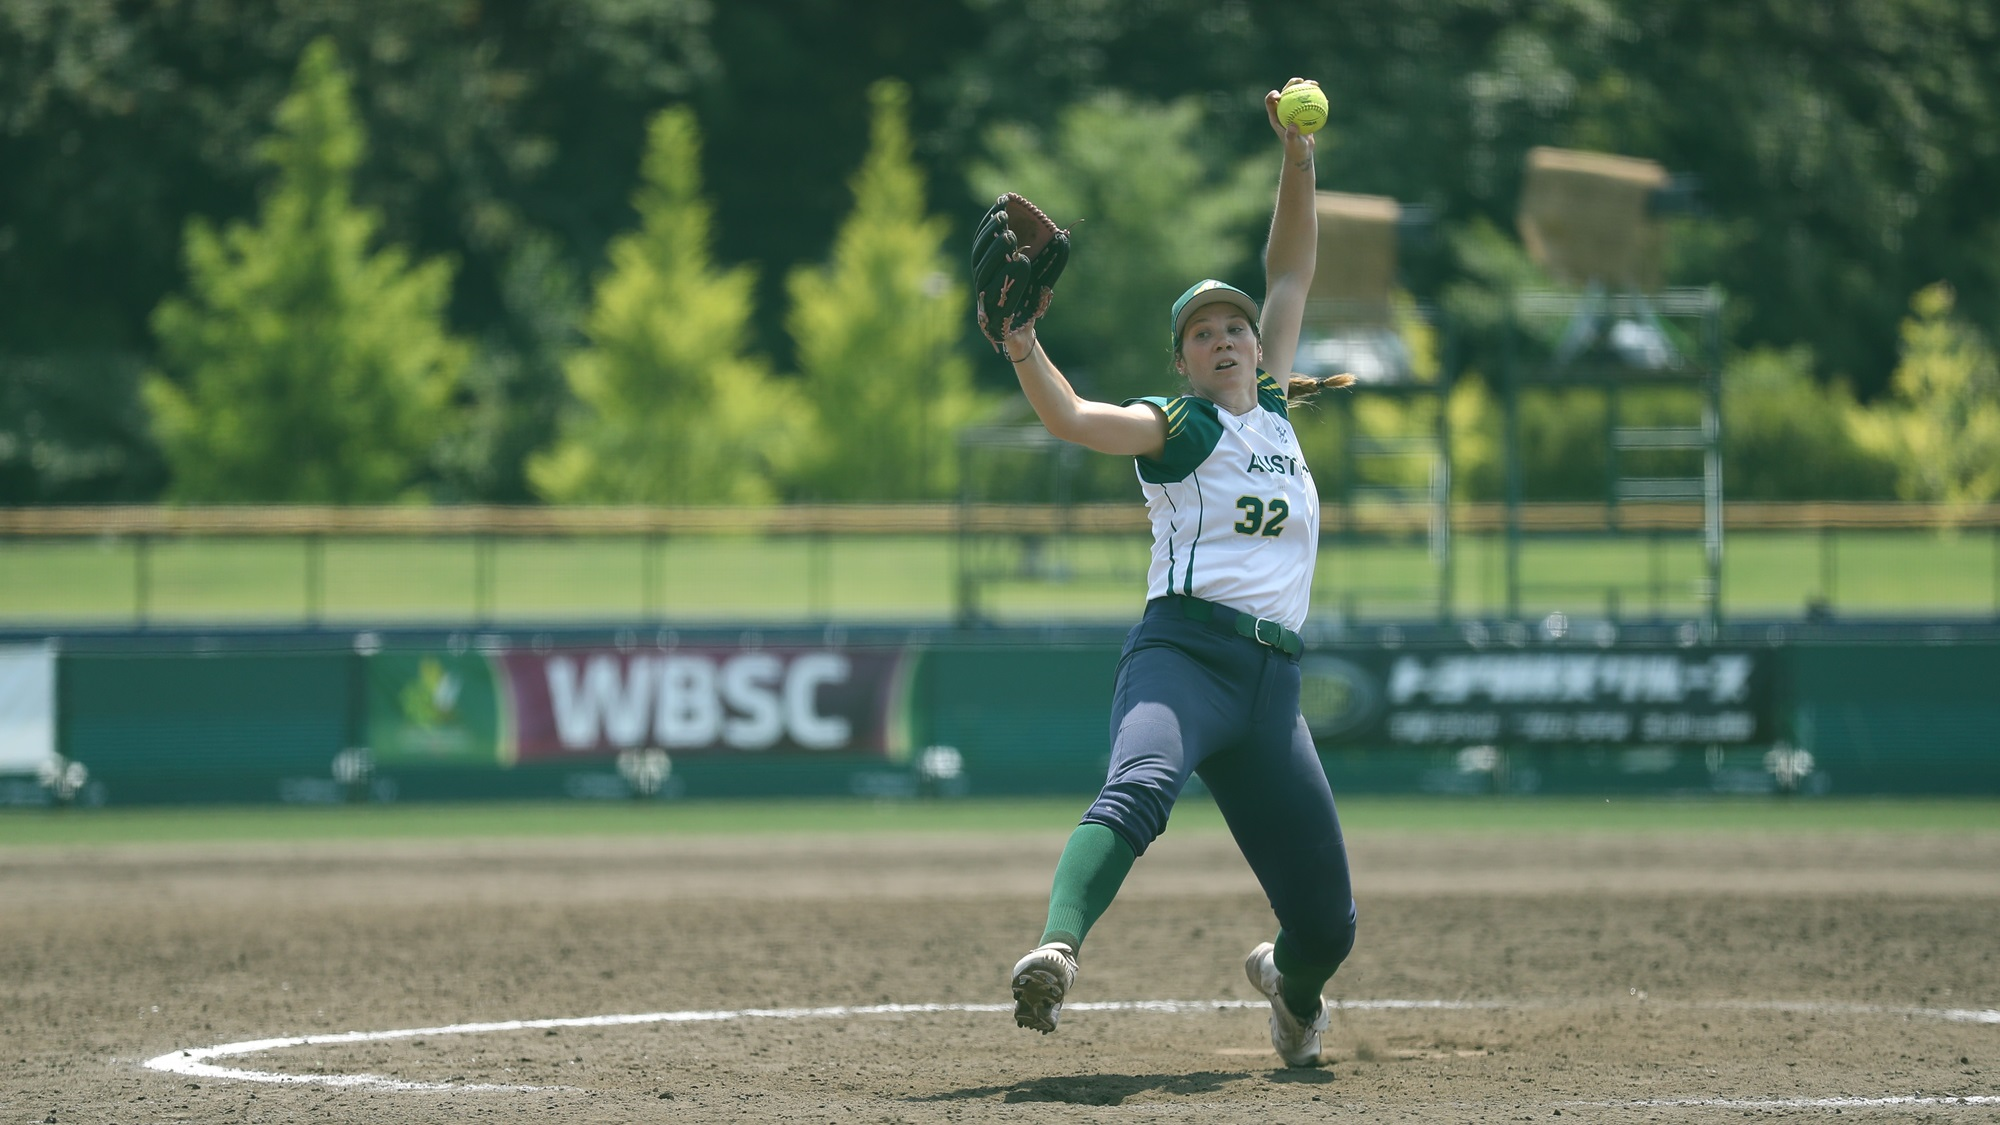 Kaia Parnaby pitched 5 innings and earned the win for Australia